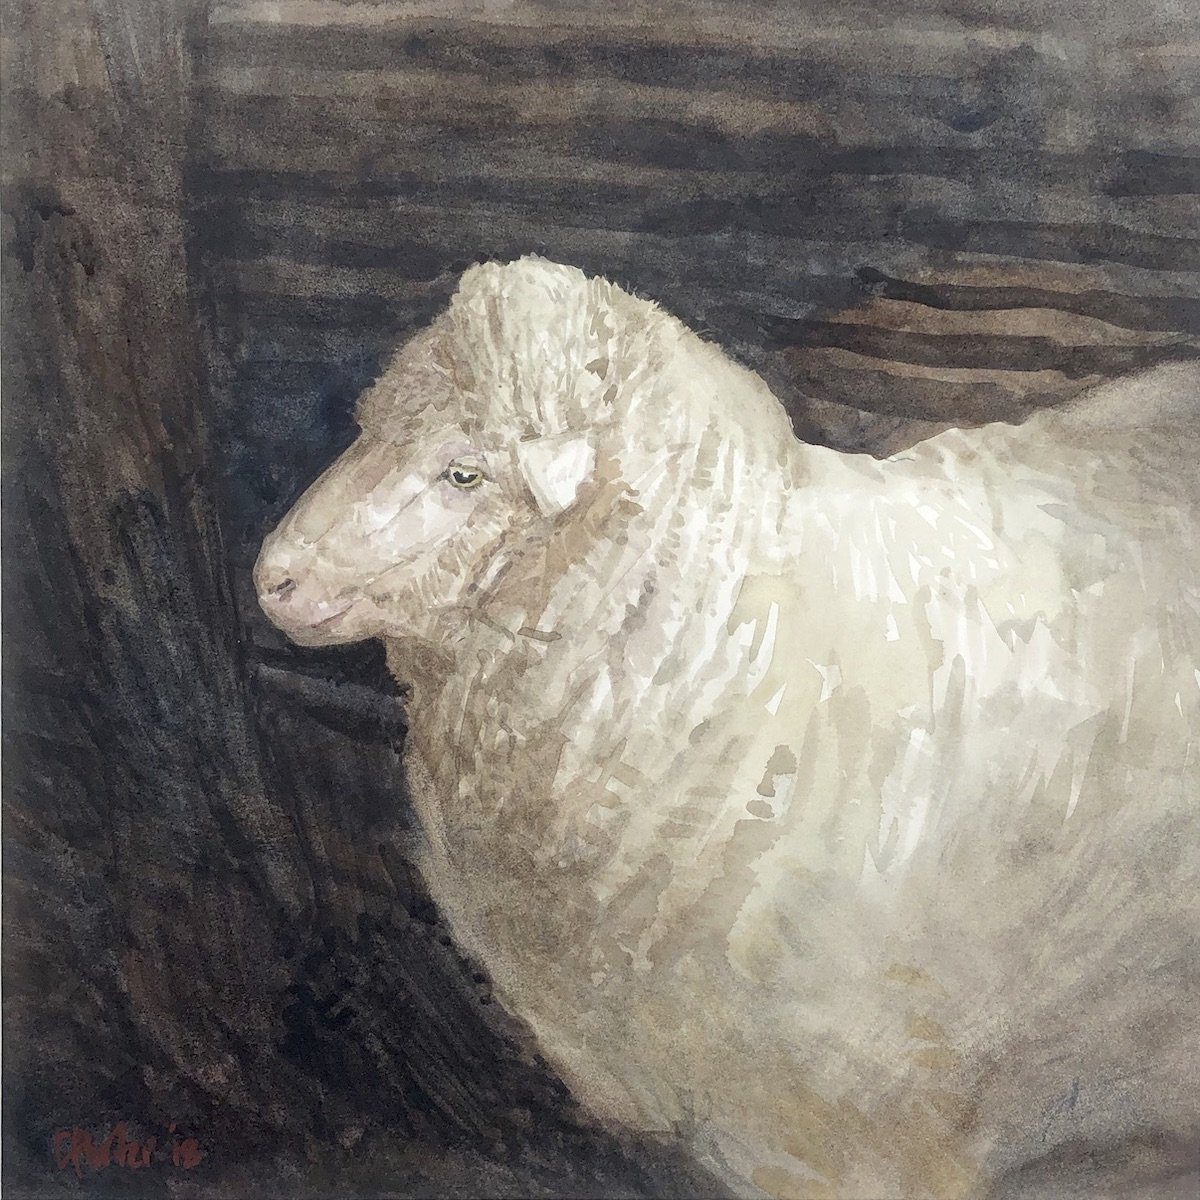 Watercolour painting by Christine Porter showing a woolly ere standing in a dark shed looking pensive.